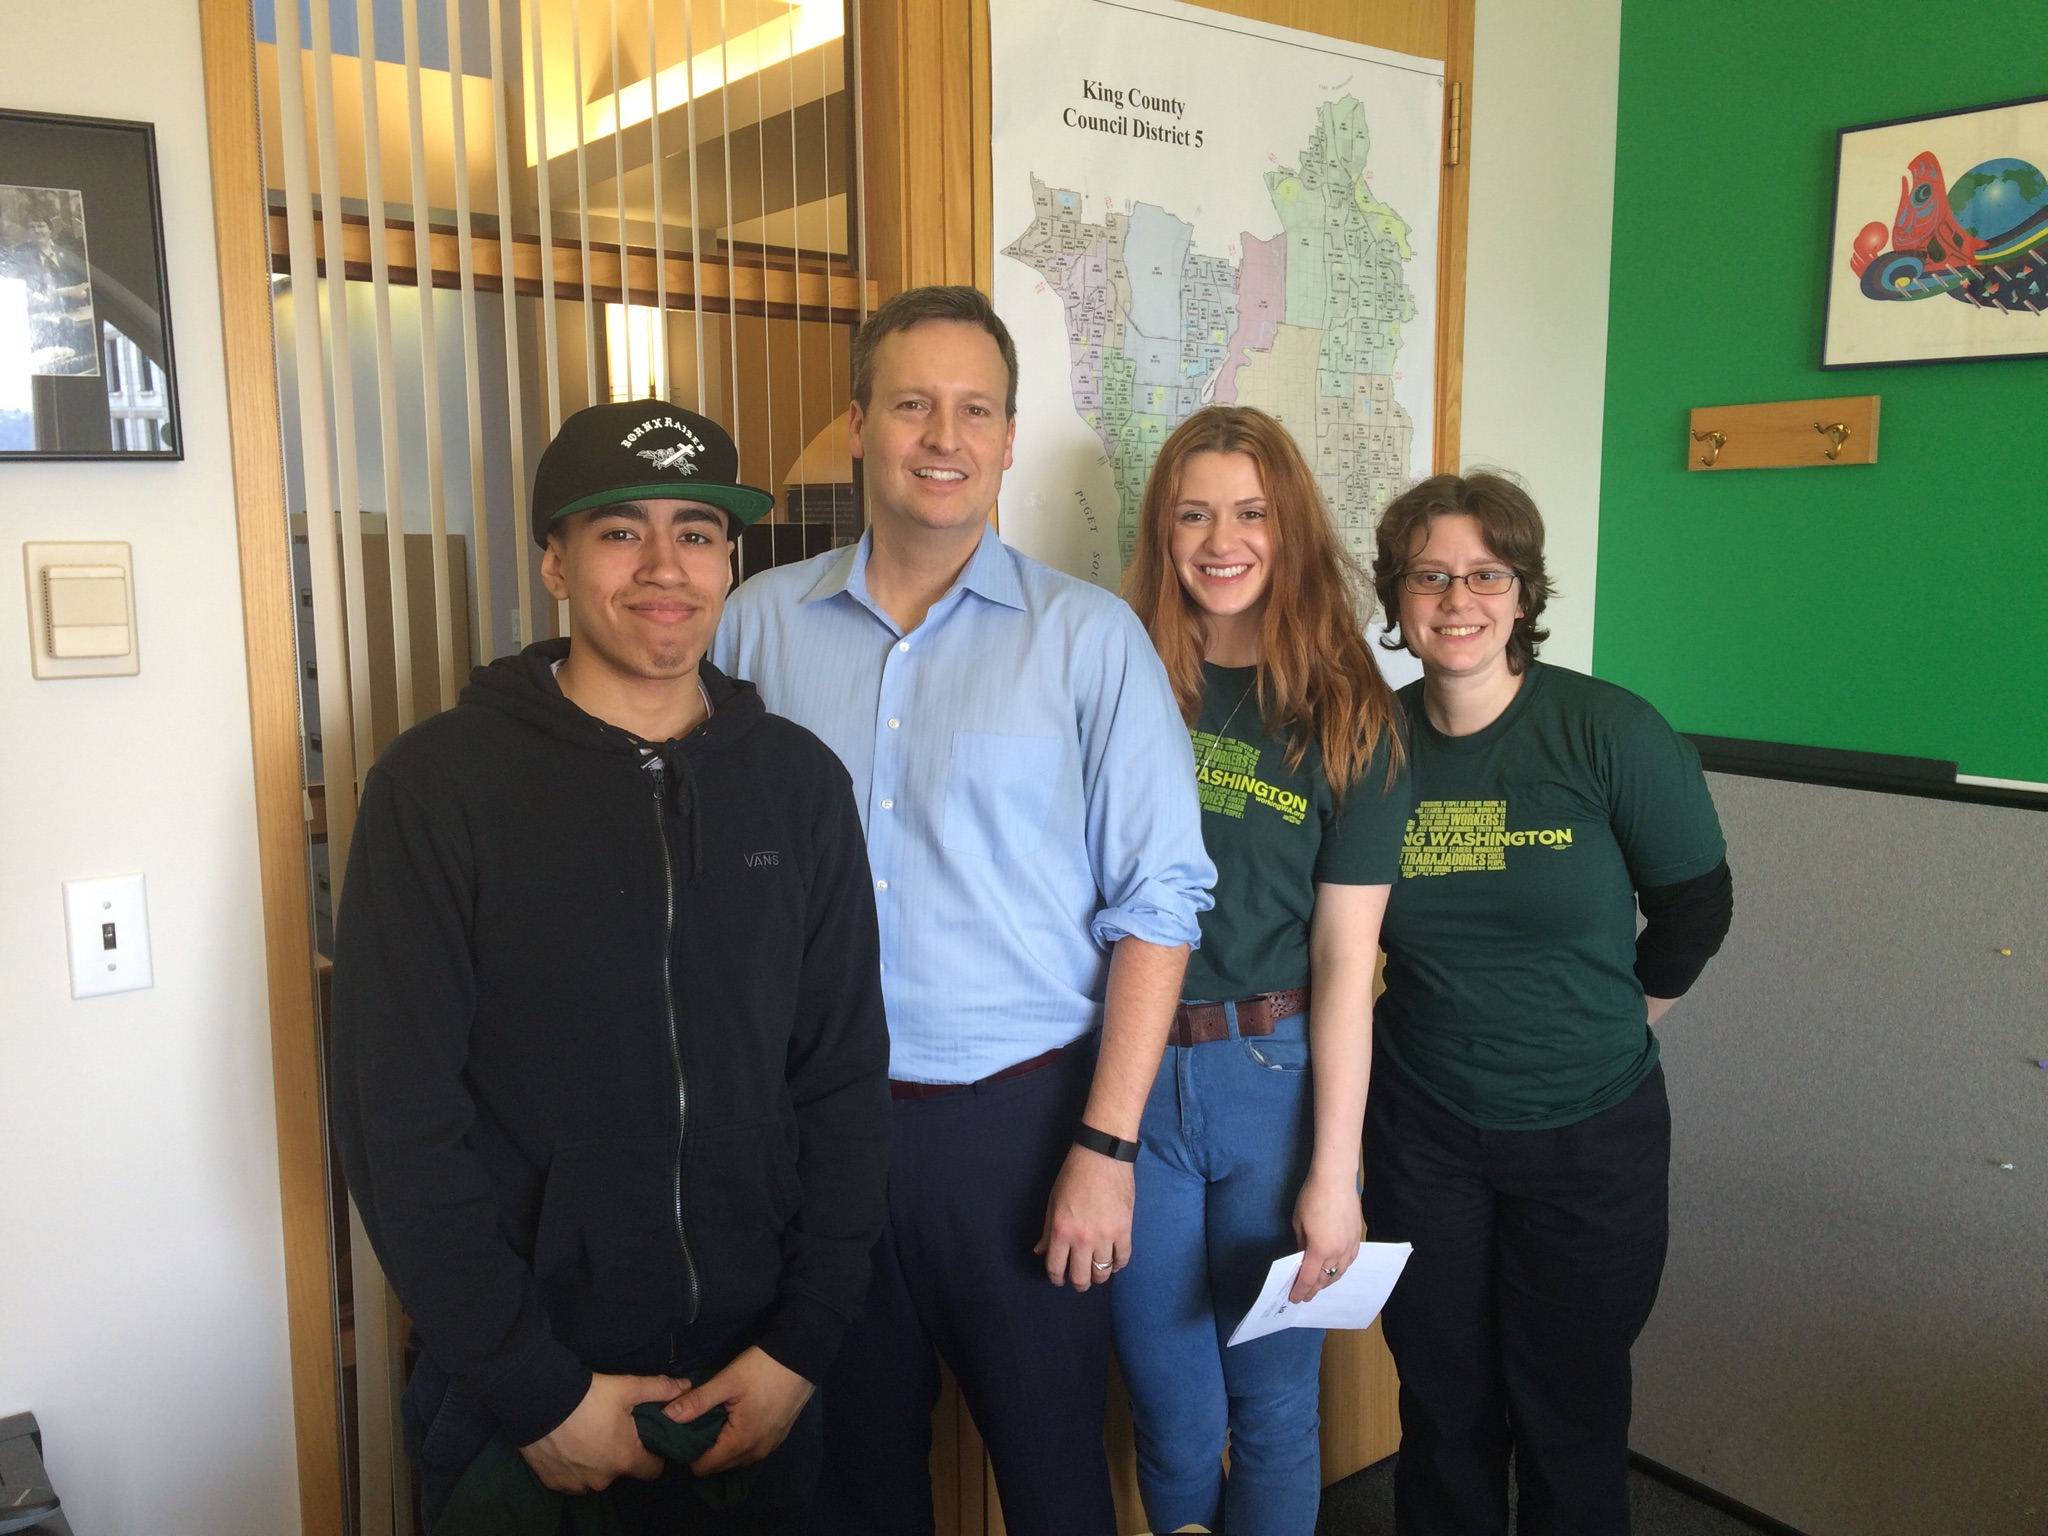 King County Councilmember Dave Upthegrove with us after our meeting.